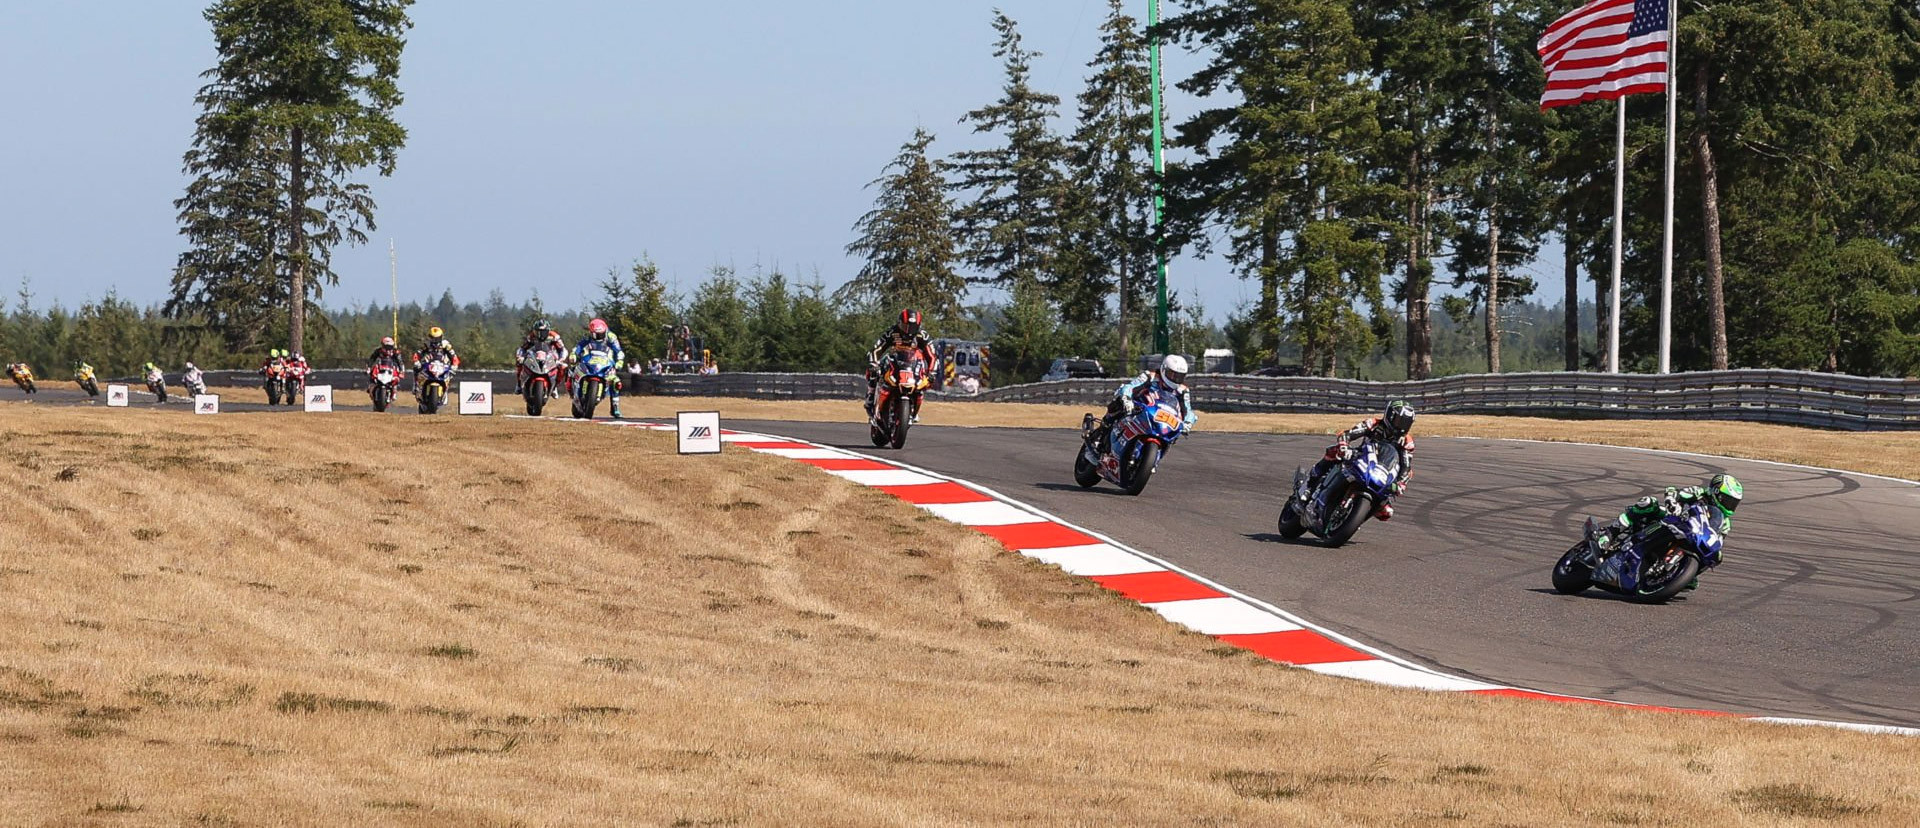 Action from a MotoAmerica Superbike race at Ridge Motorsports Park. Photo by Brian J. Nelson.